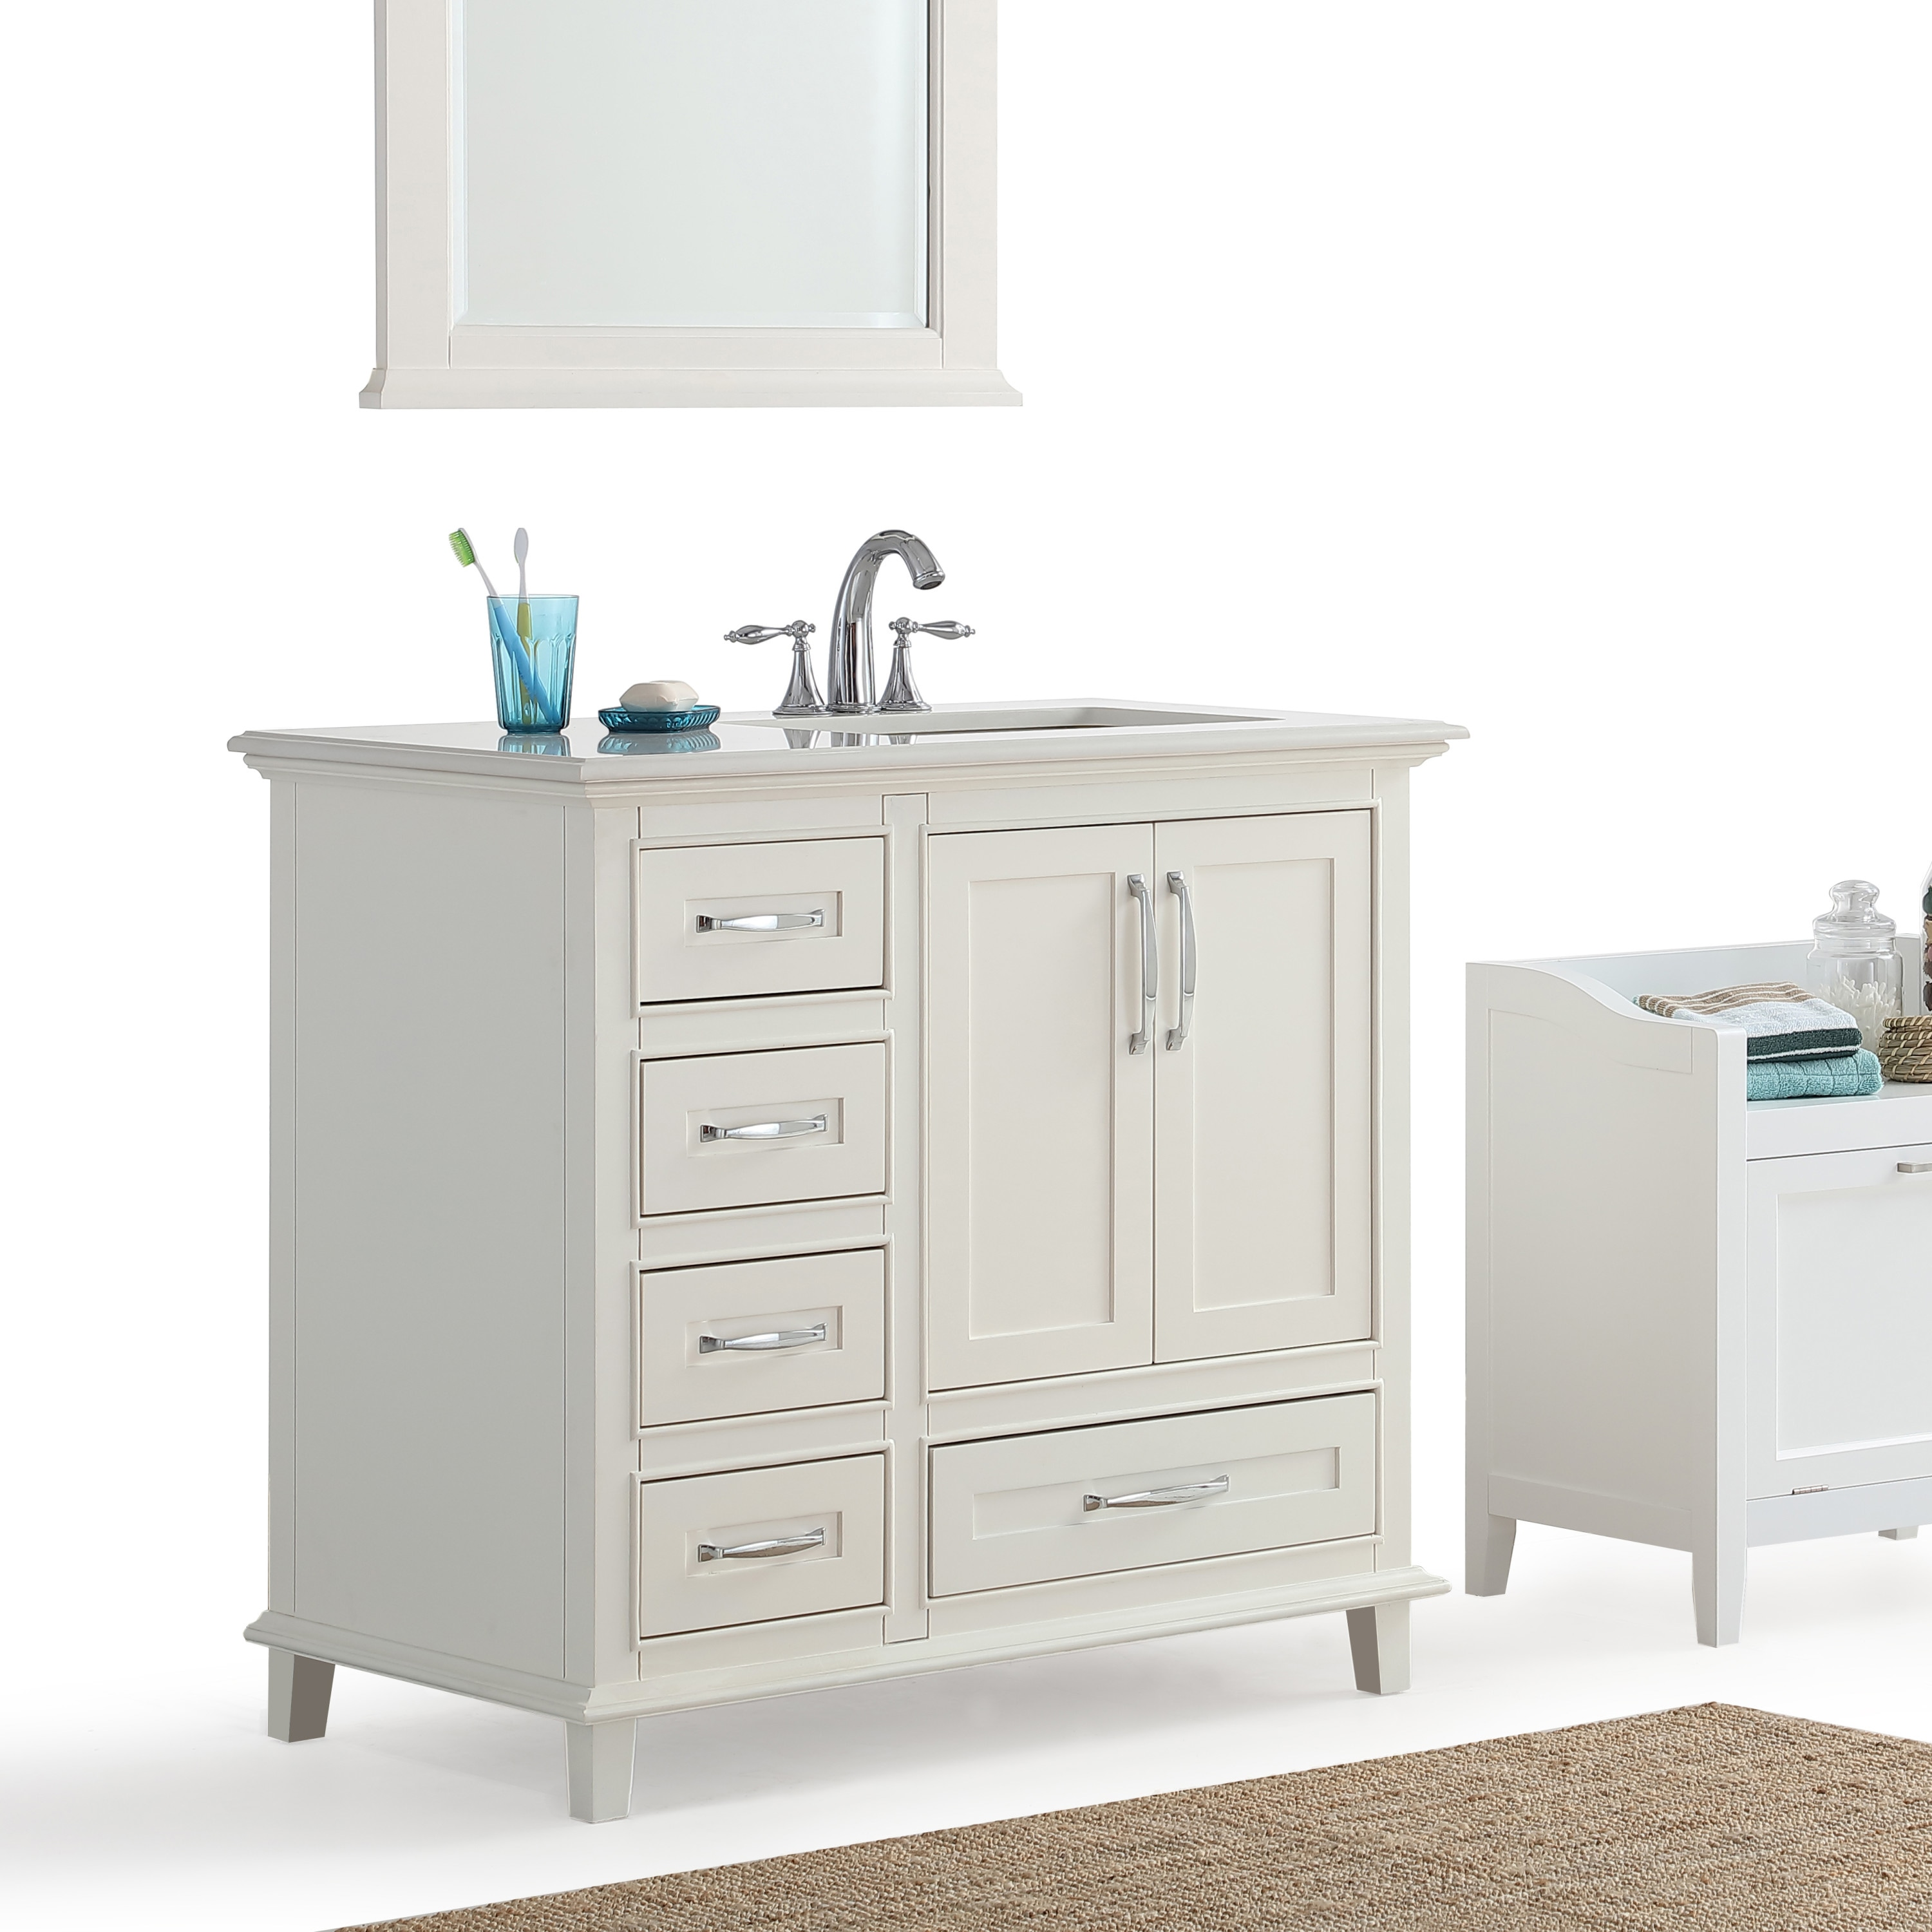 vanity furniture ideas wholesale inch of wondrous bathr with contemporary design in bathroom top lowes for sink without double